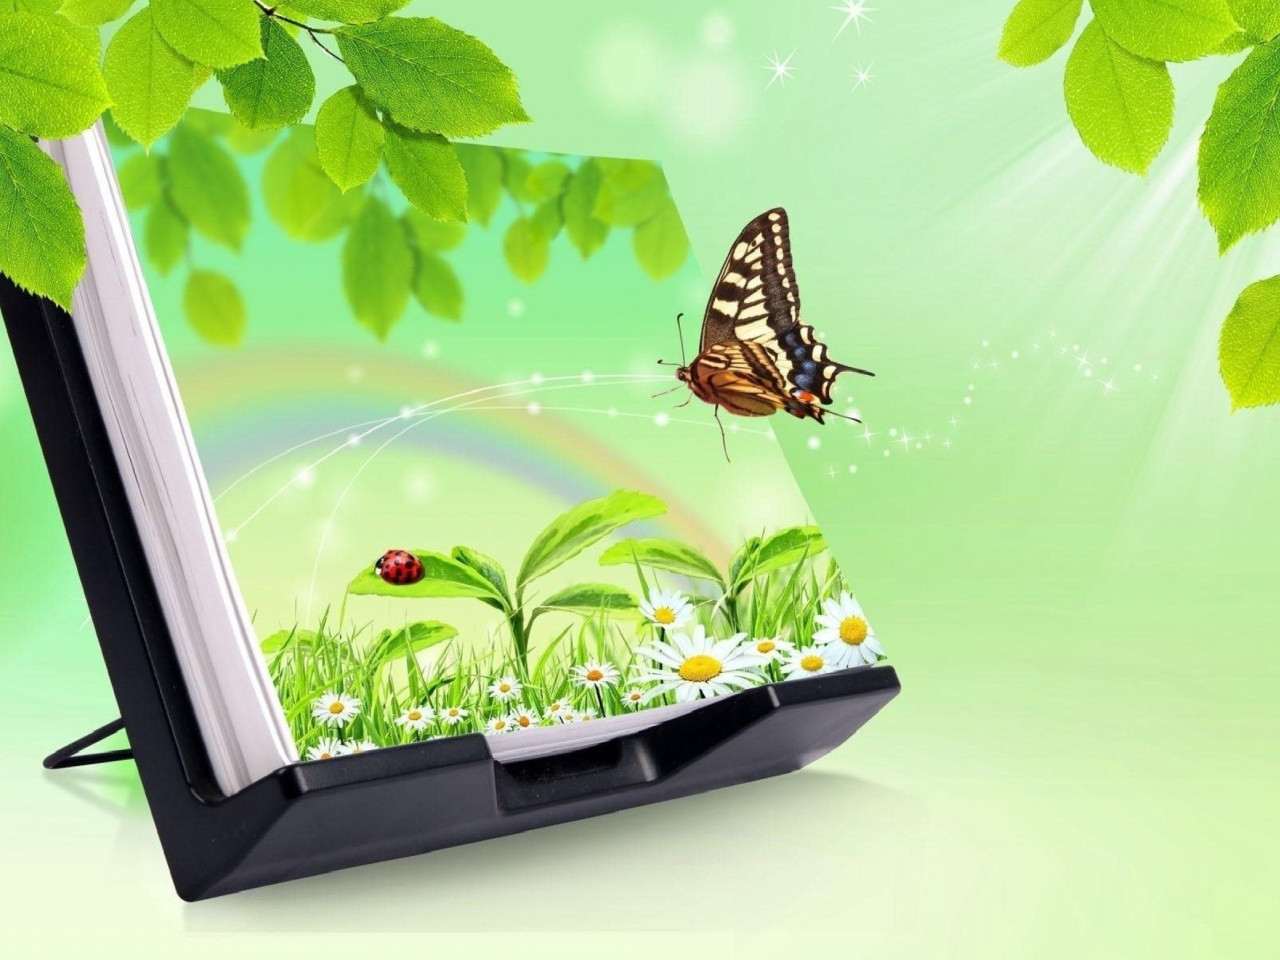 3D Green Nature with Butterfly wallpaper 1280x960